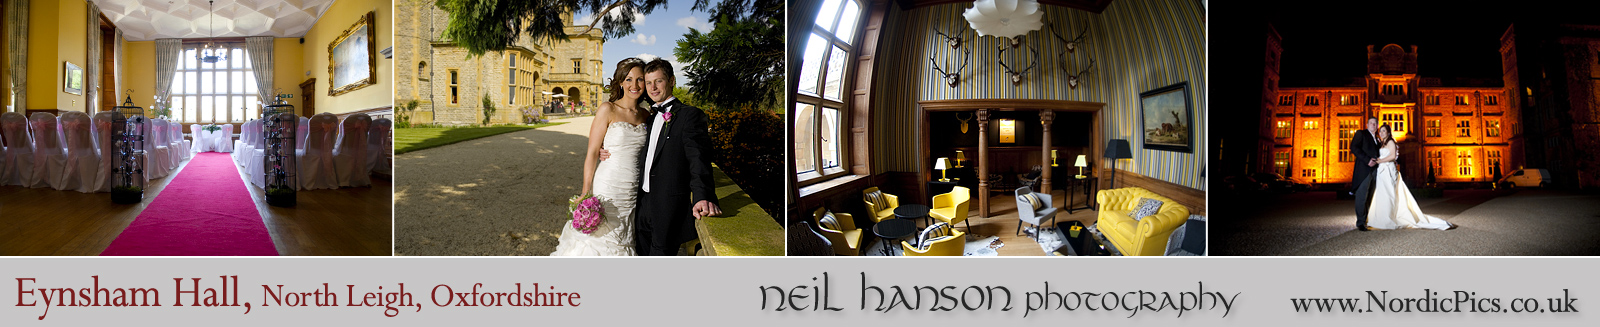 Wedding Photography at Eynsham Hall North Leigh Oxfordshire by Neil Hanson Photography